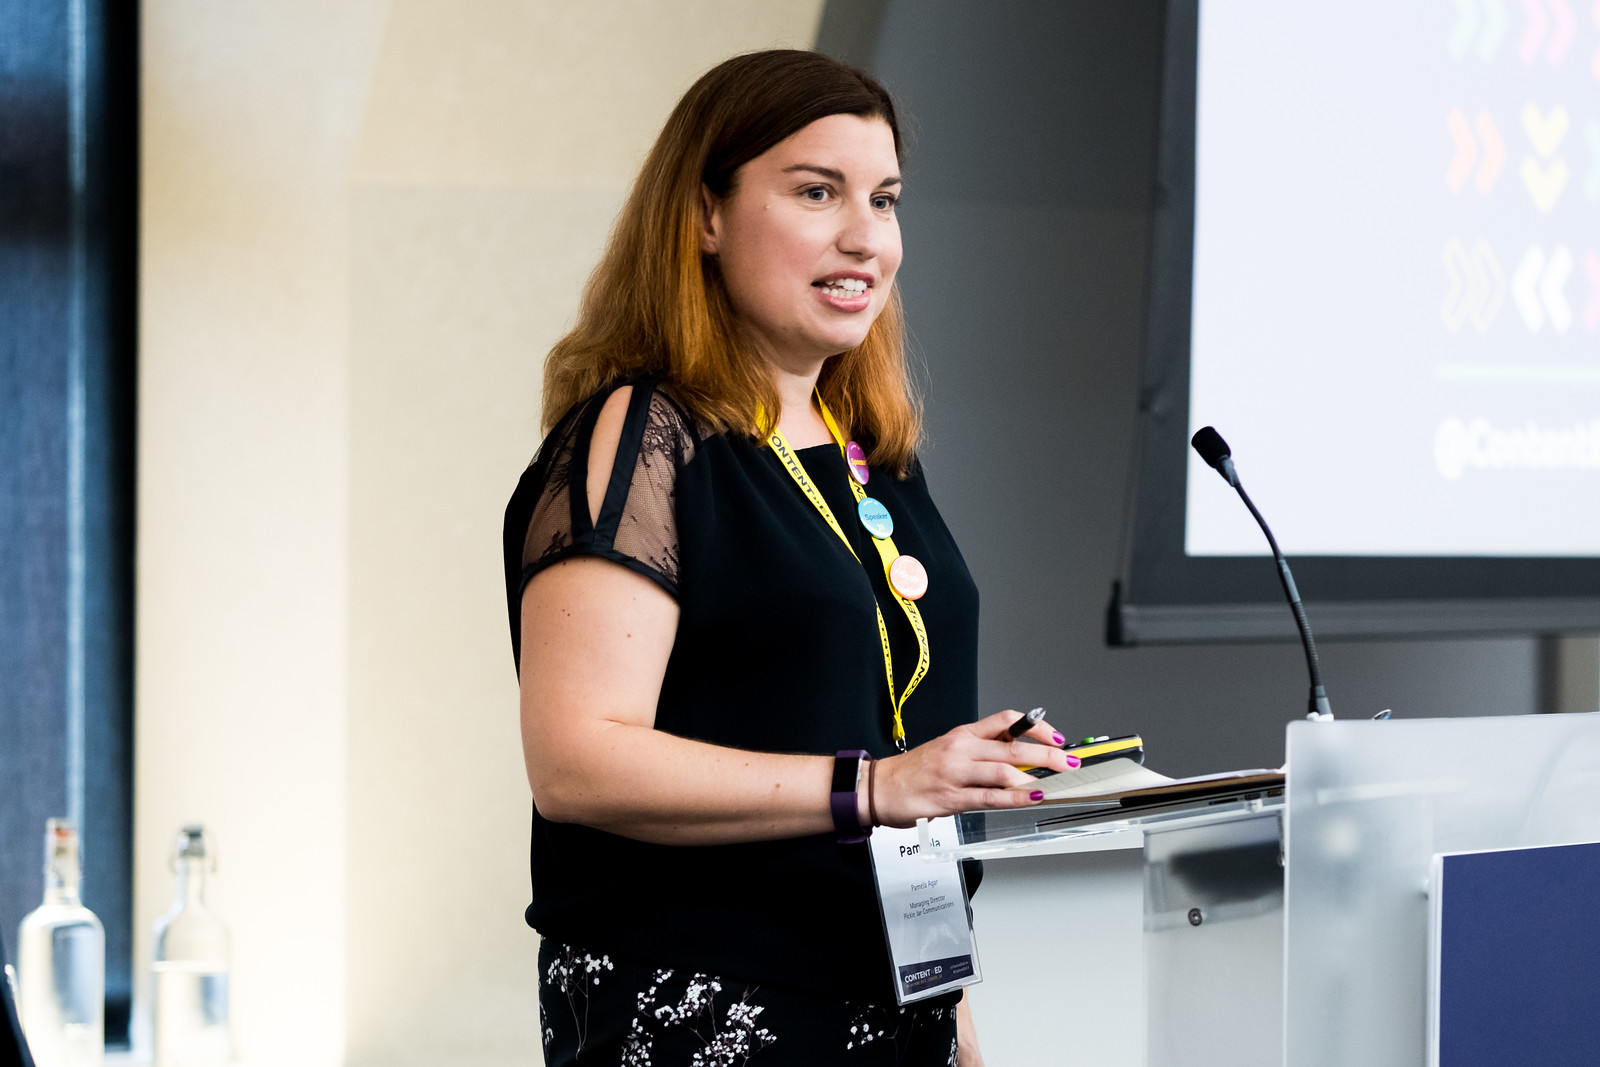 Presenting at ContentEd 2017  (photograph: Tynesight Photographic Services)